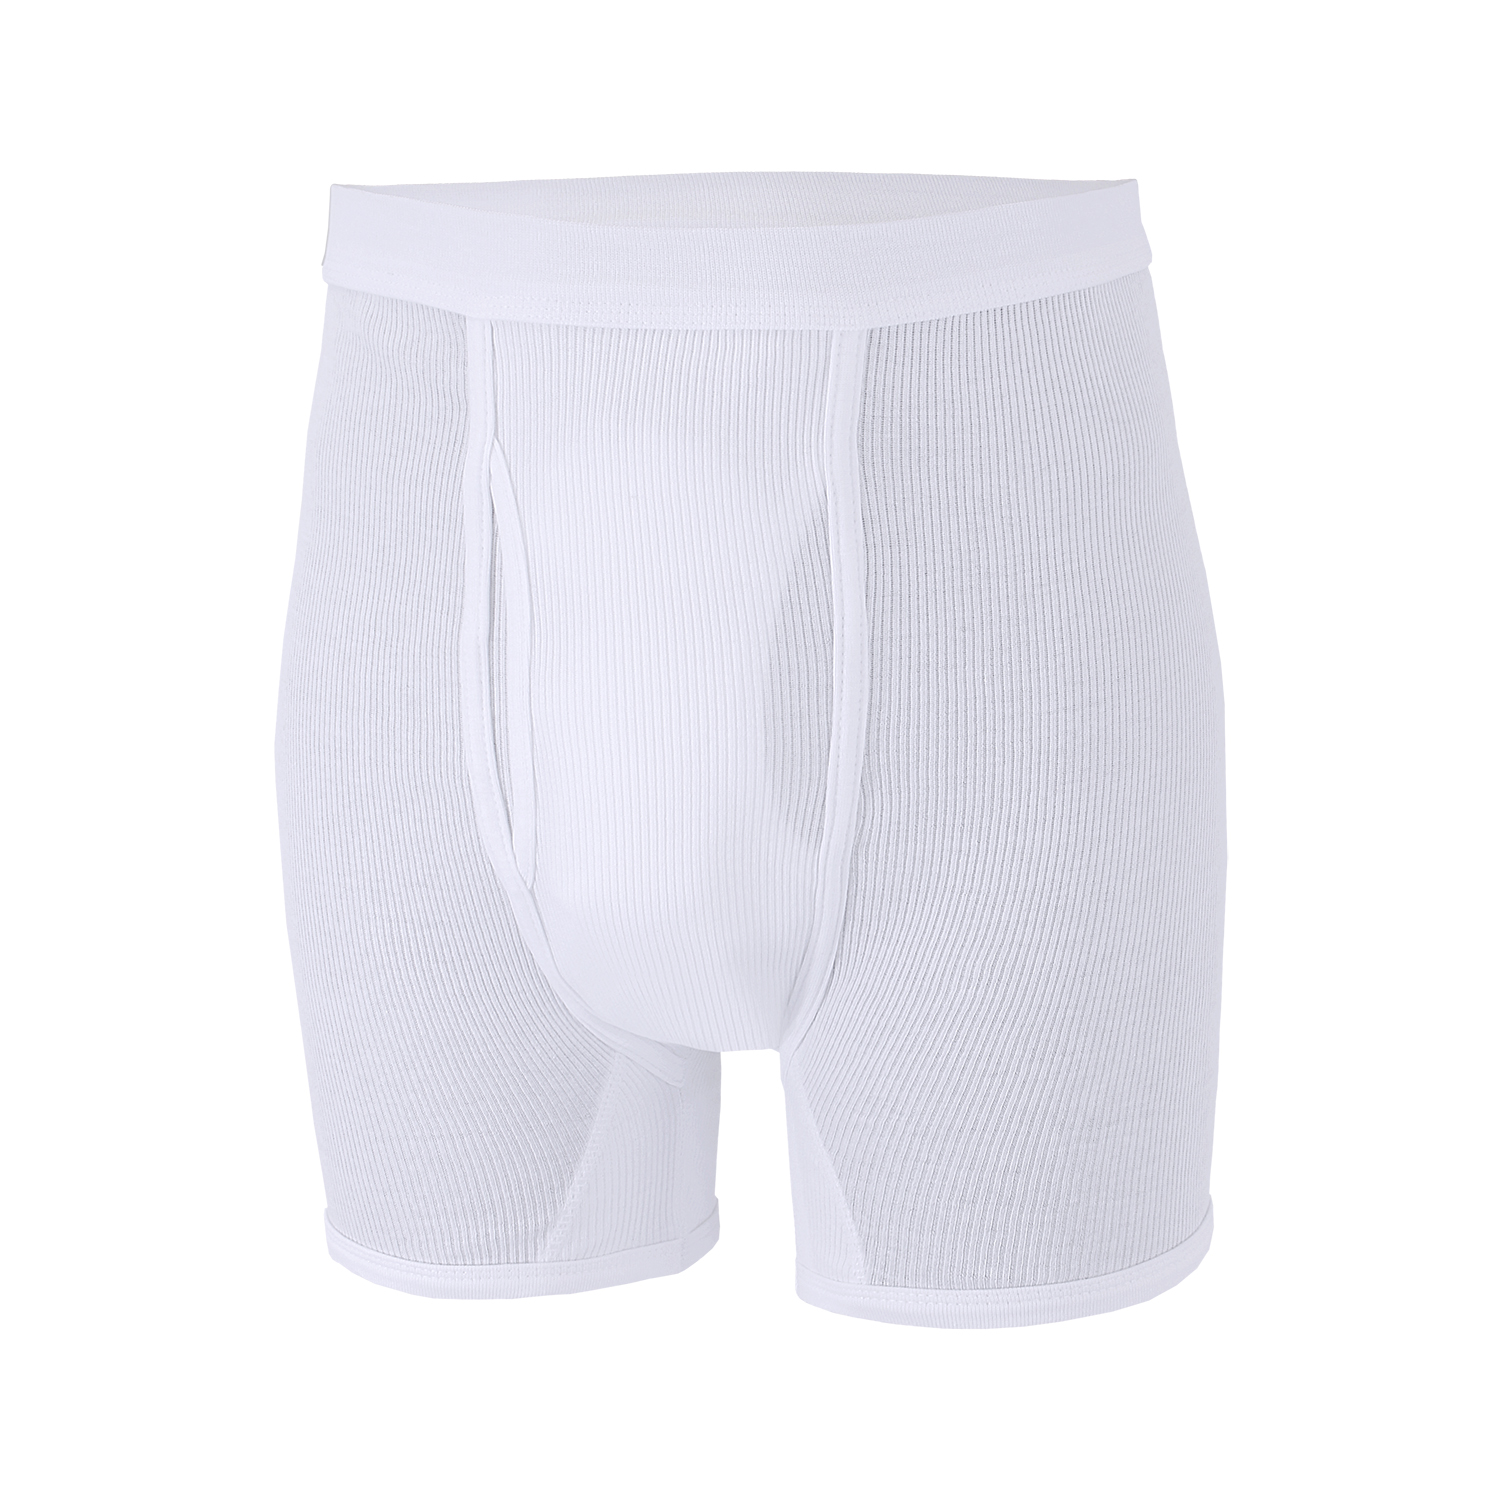 Detail Image to White short trousers PRESTIGE (double rib) from ADAMO in oversizes up to 20